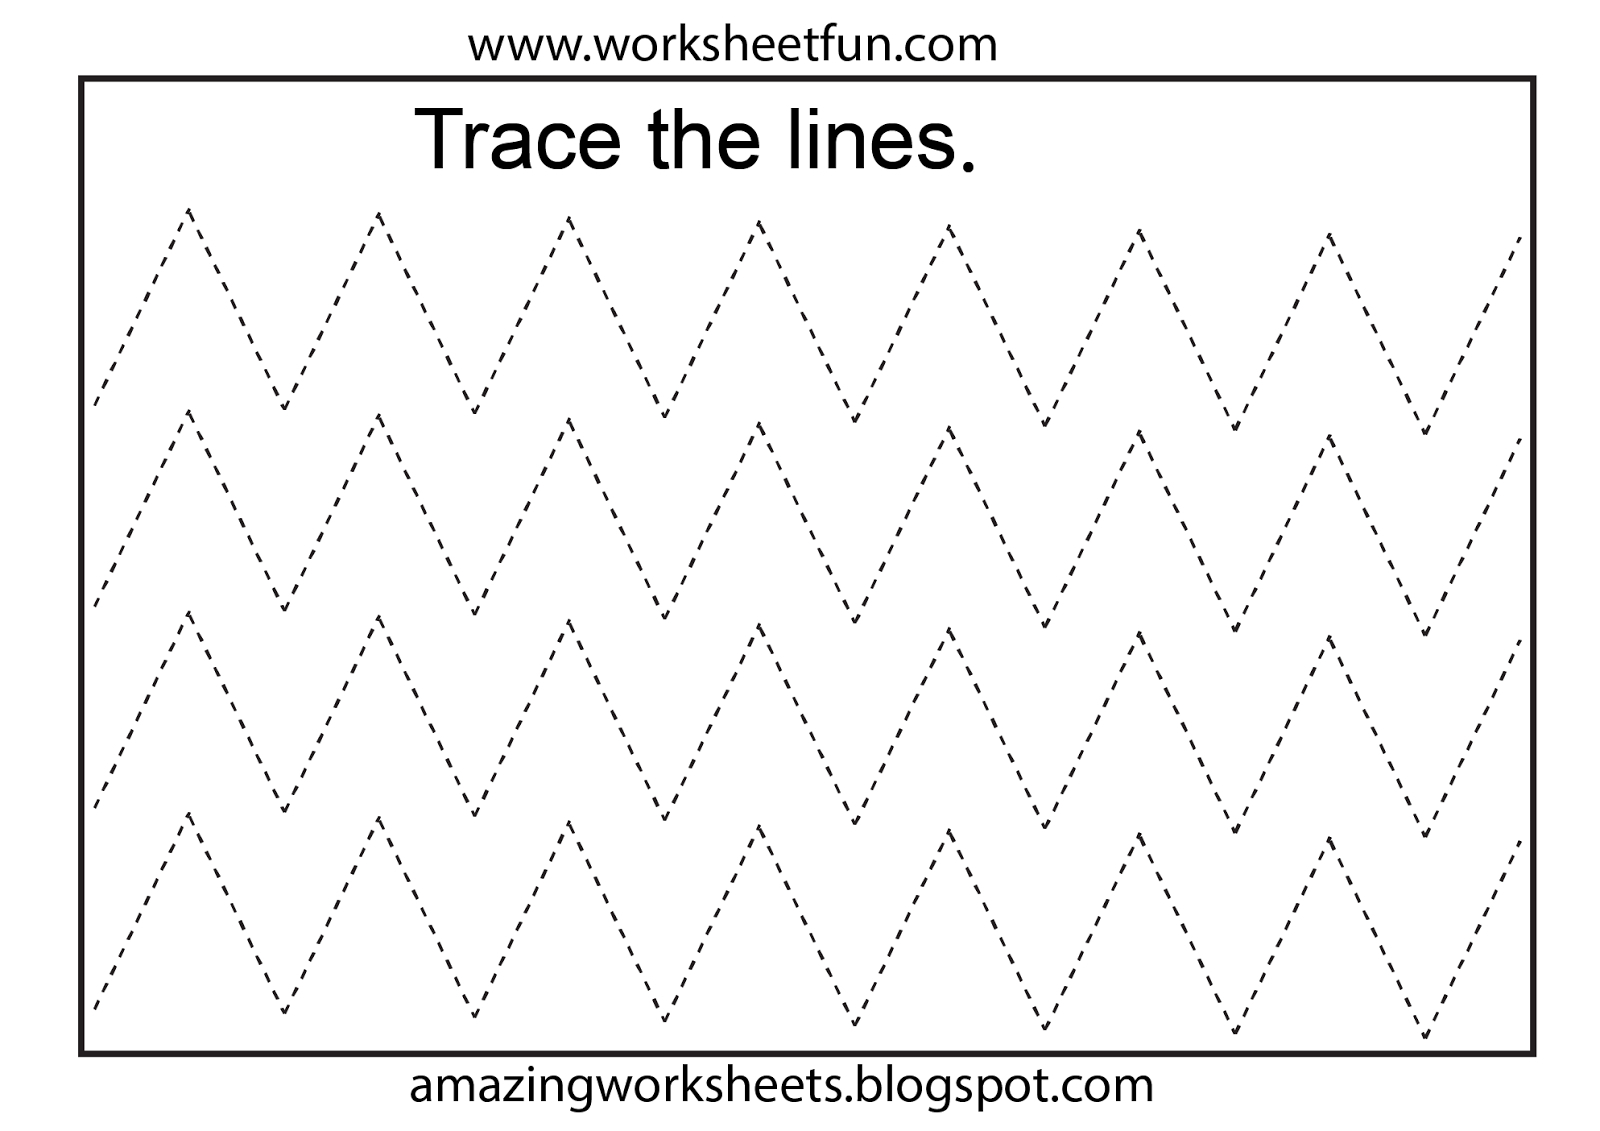 Worksheetfun - Free Printable Worksheets | Toddler Worksheets - Free | Free Printable Preschool Worksheets Tracing Lines